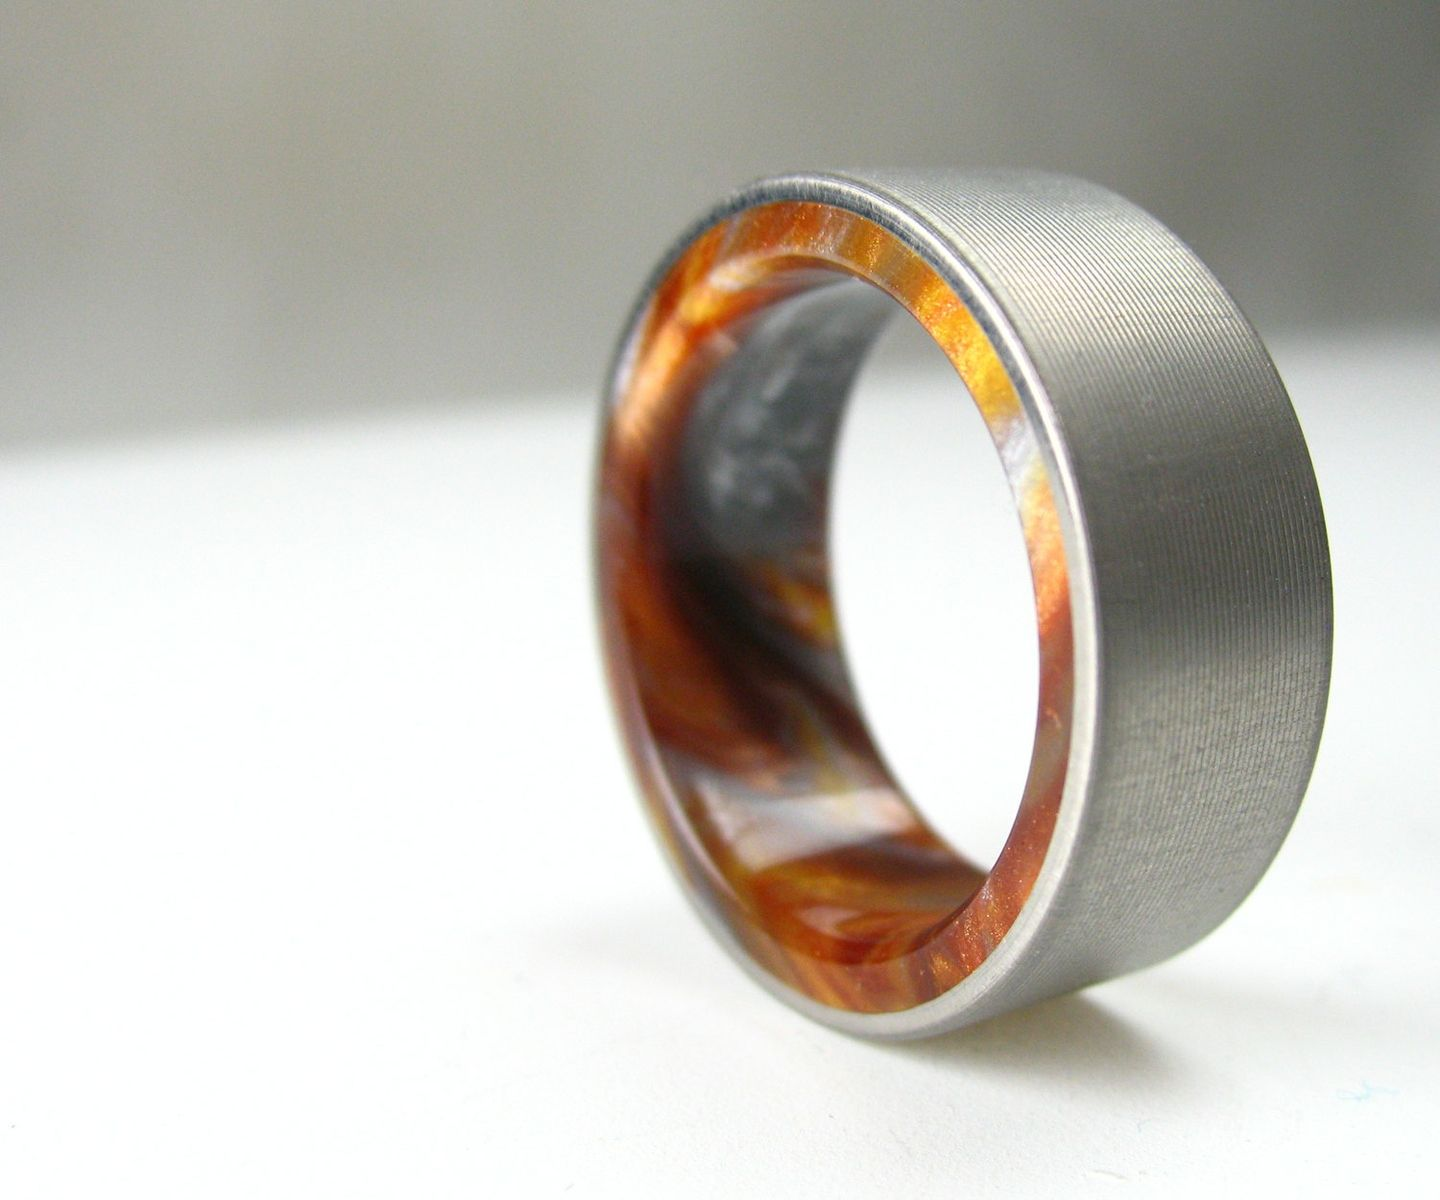 Buy A Handmade Titanium Wood Tone Burl Mens Wedding Band Iced Bronze Made To Order From Spexton